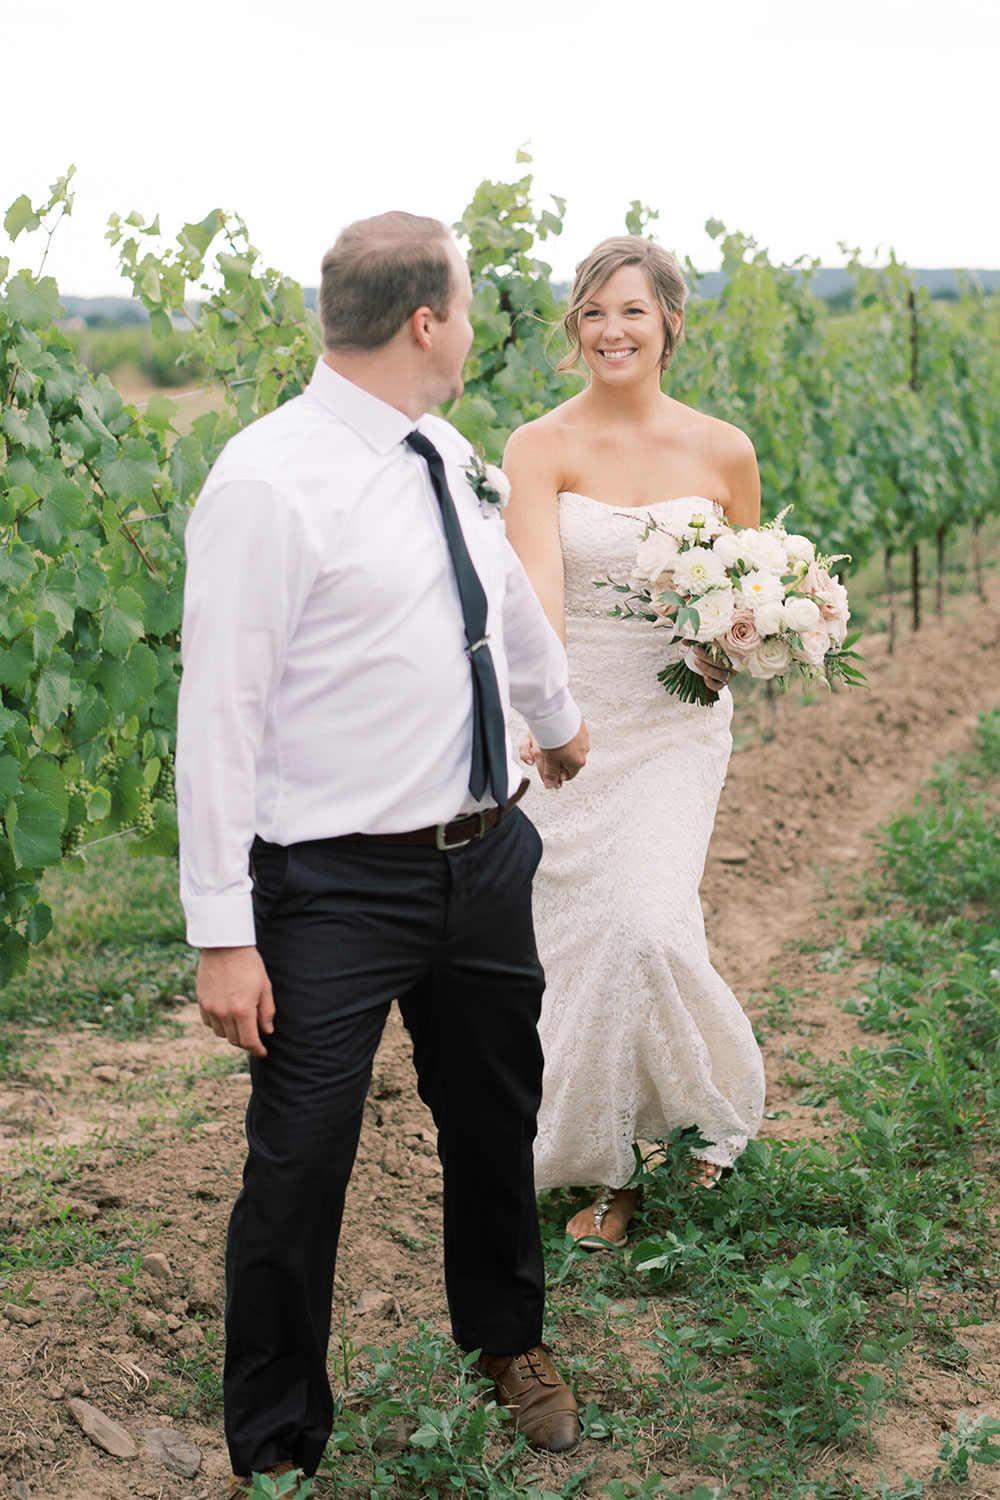 Niagara-on-the-Lake-Elopement-Vineyard-Bride-photo-by-Emily-Jean-Photography-0031.JPG